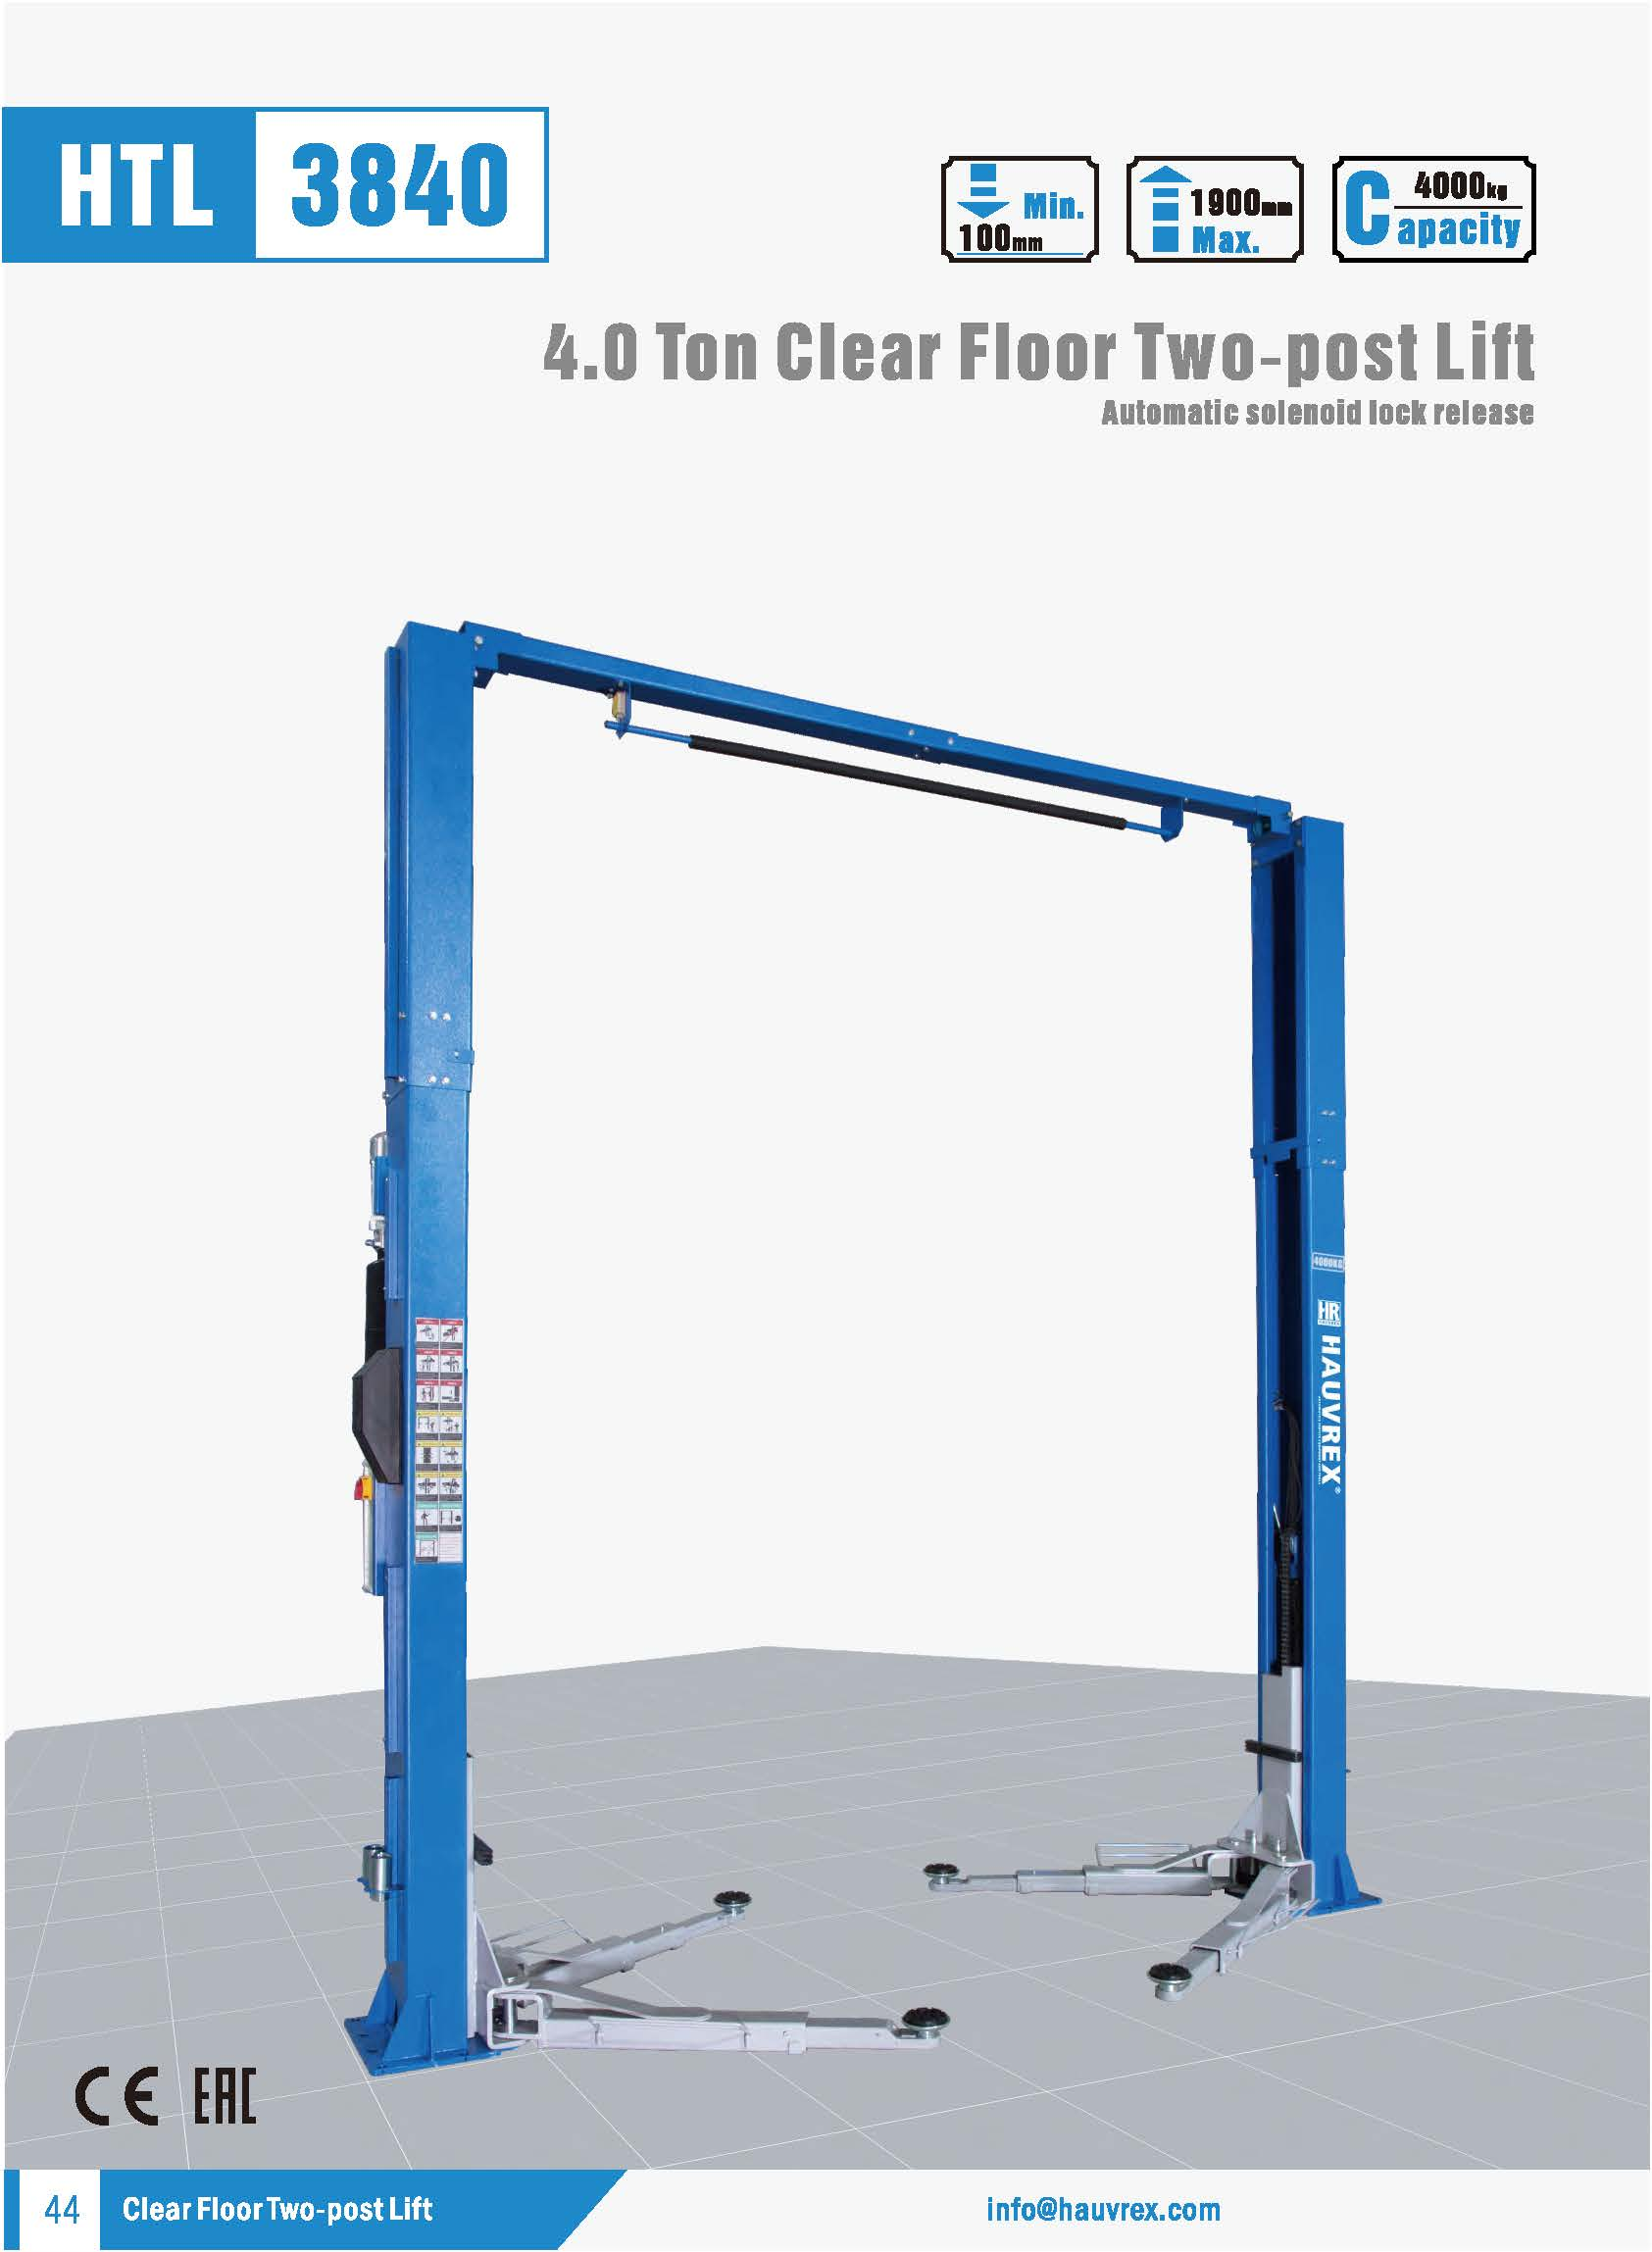 HTL3840 Two-post Lift